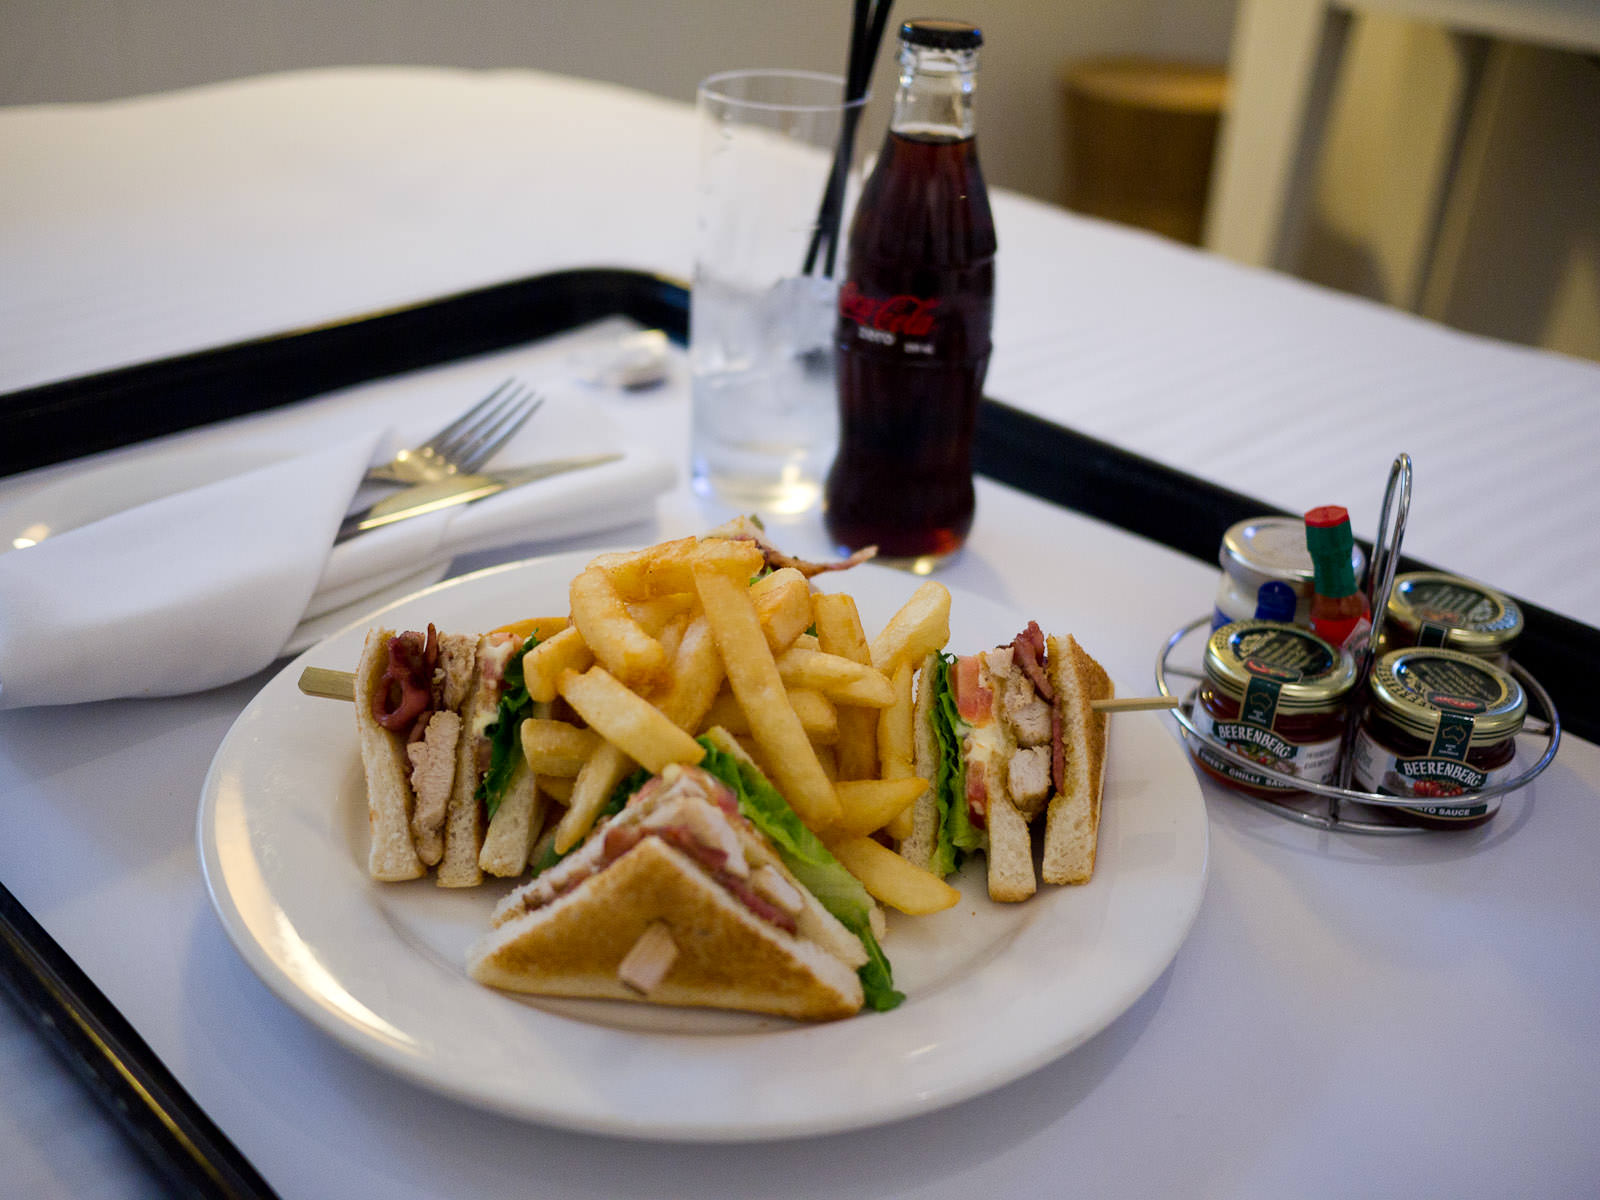 Room Service at The Sebel Pier One (Front Restaurant)  - club sandwich and Coke Zero